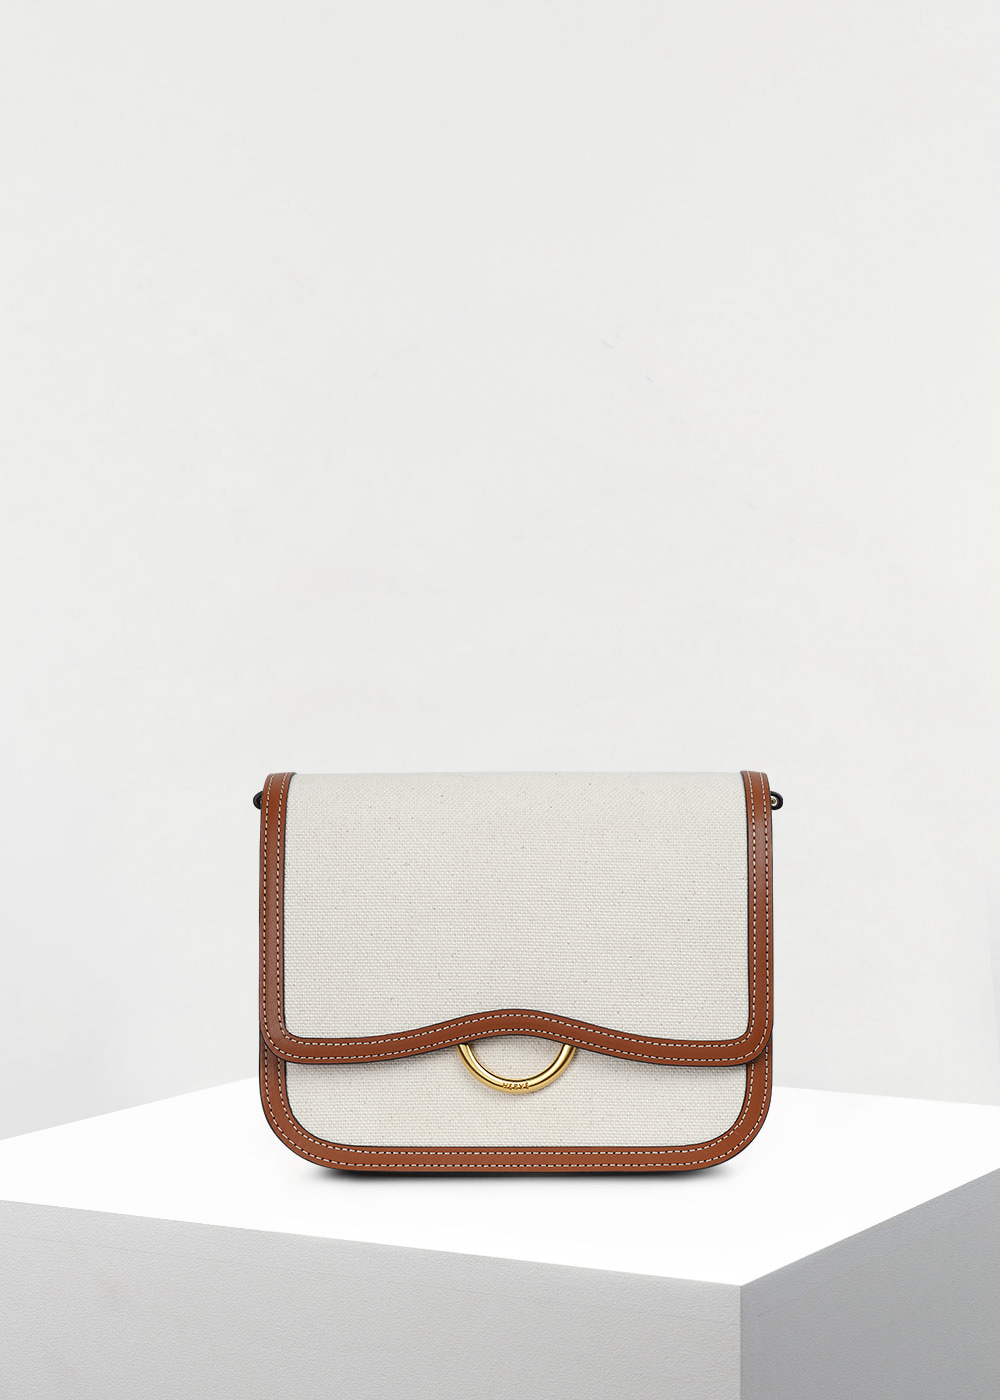 LONDE BAG CANVAS_IVORY